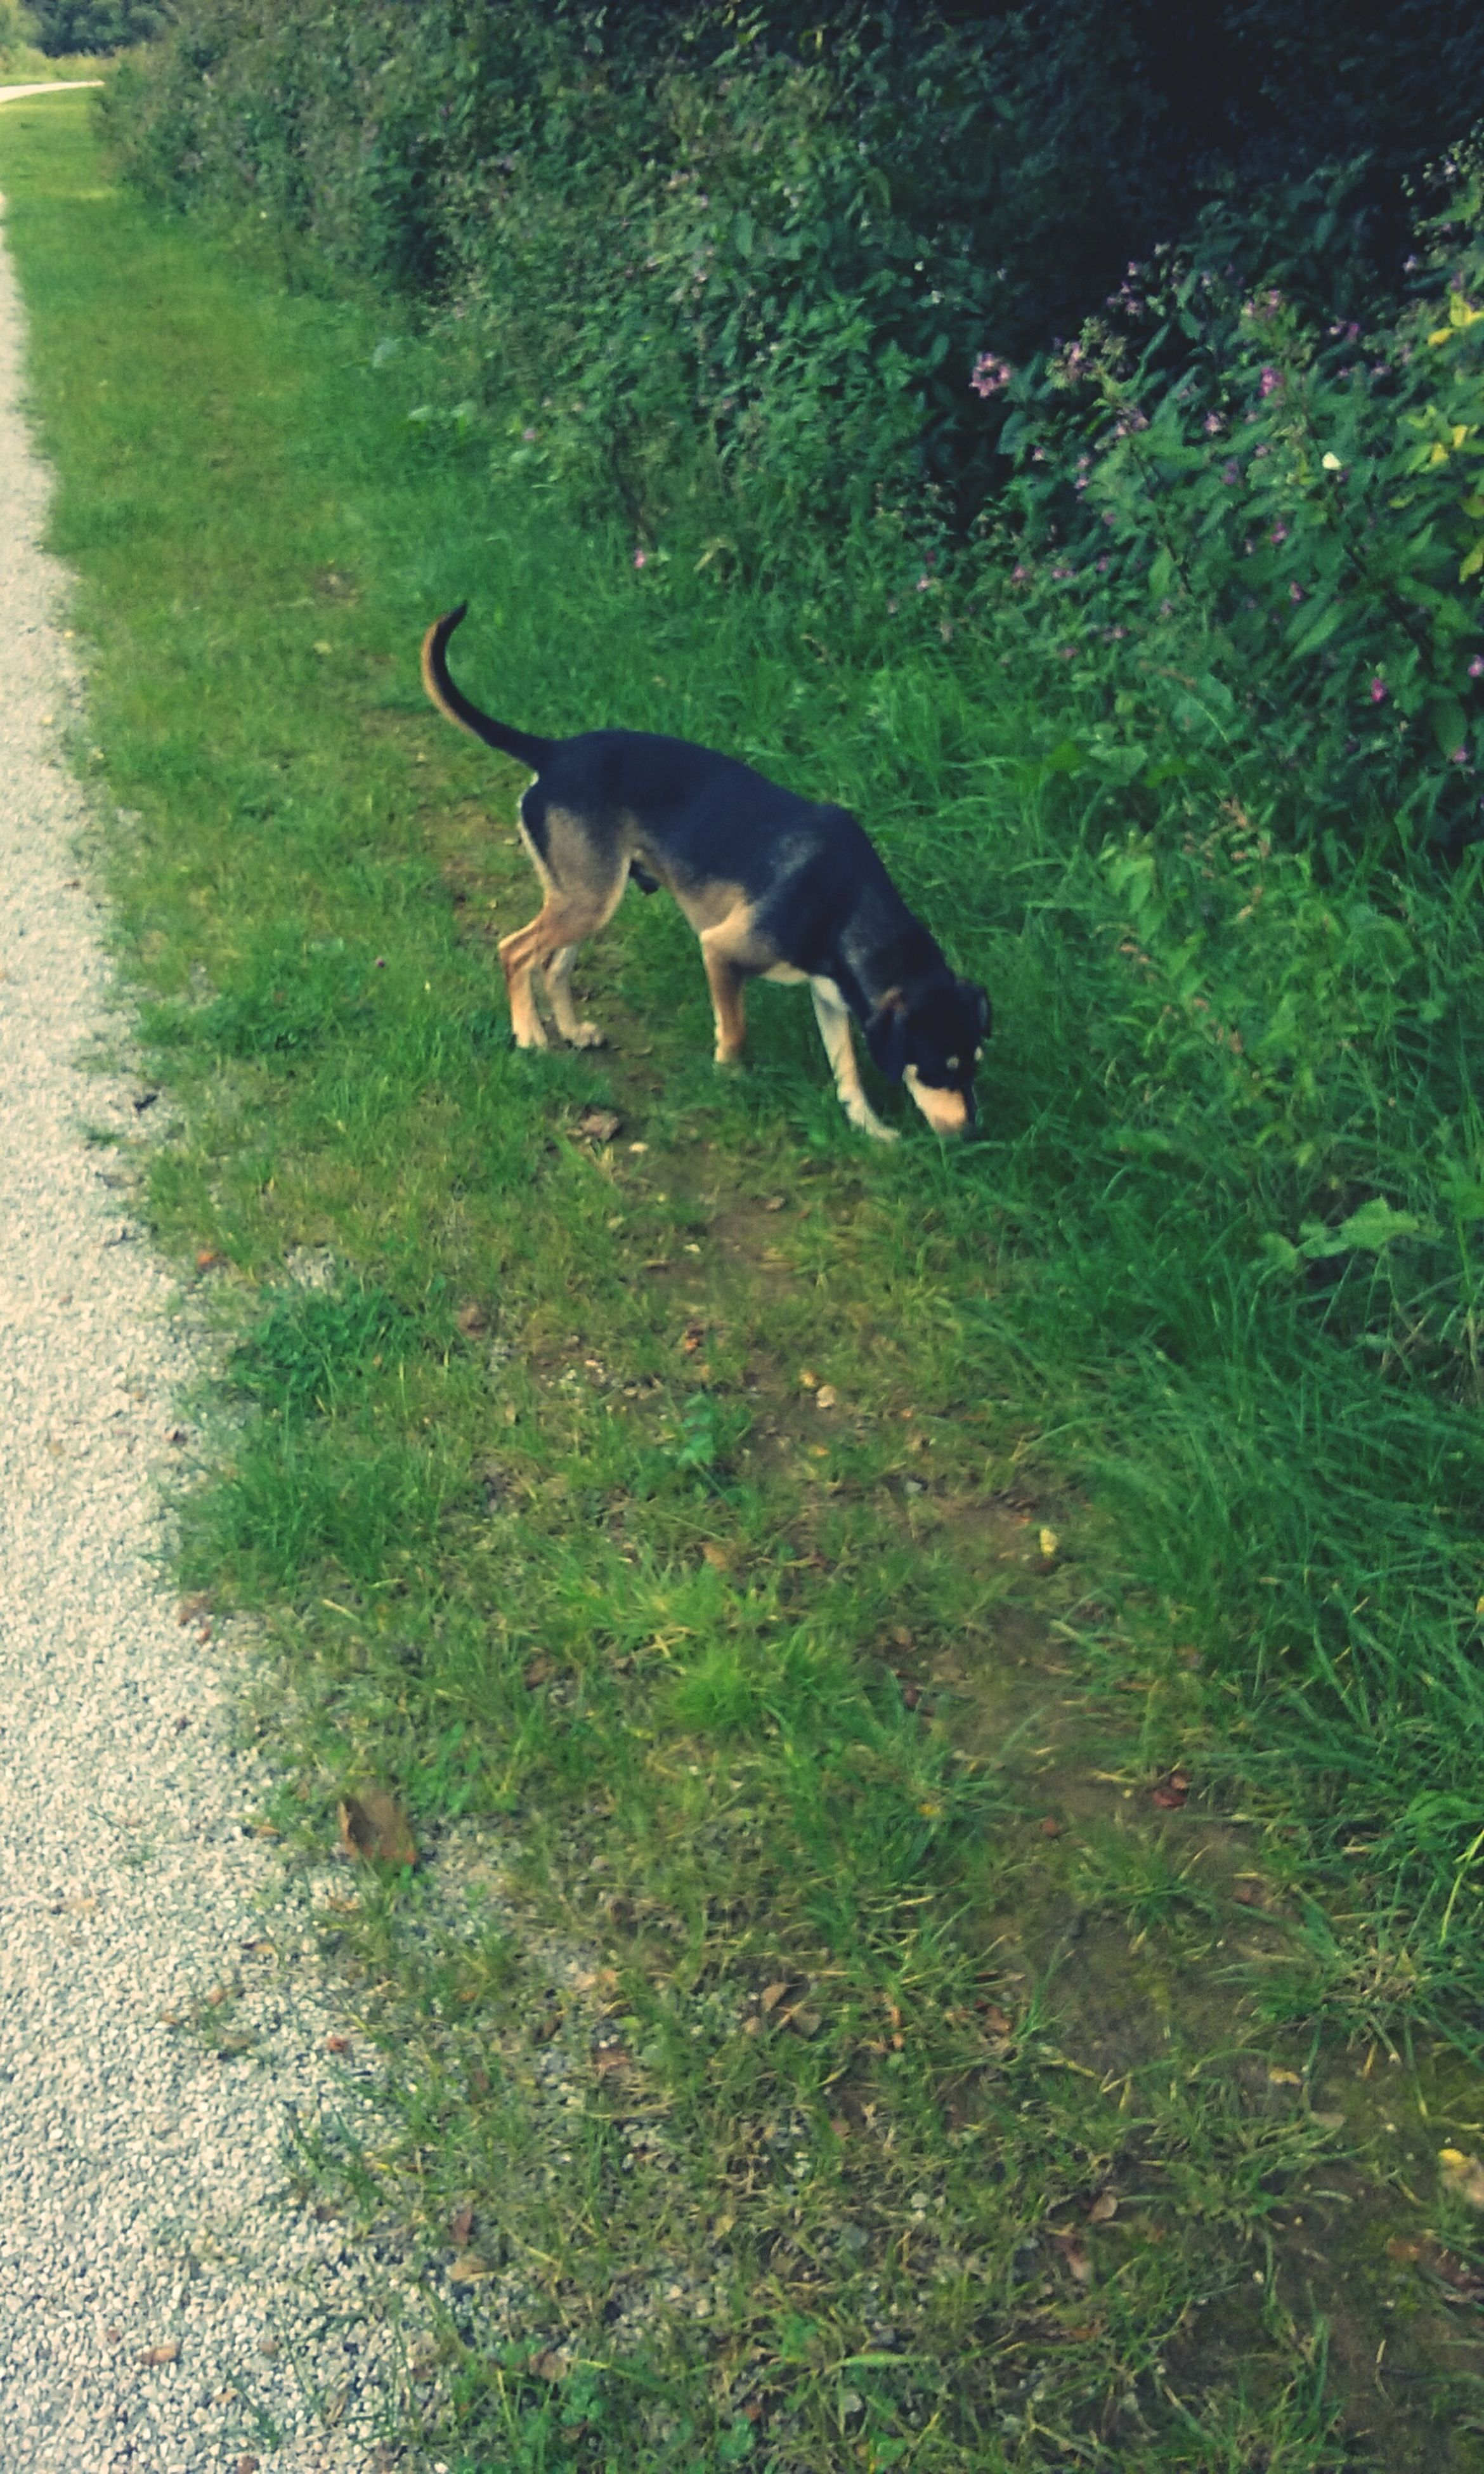 animal themes, grass, domestic animals, dog, one animal, pets, mammal, field, grassy, green color, high angle view, nature, full length, growth, day, outdoors, walking, relaxation, no people, plant